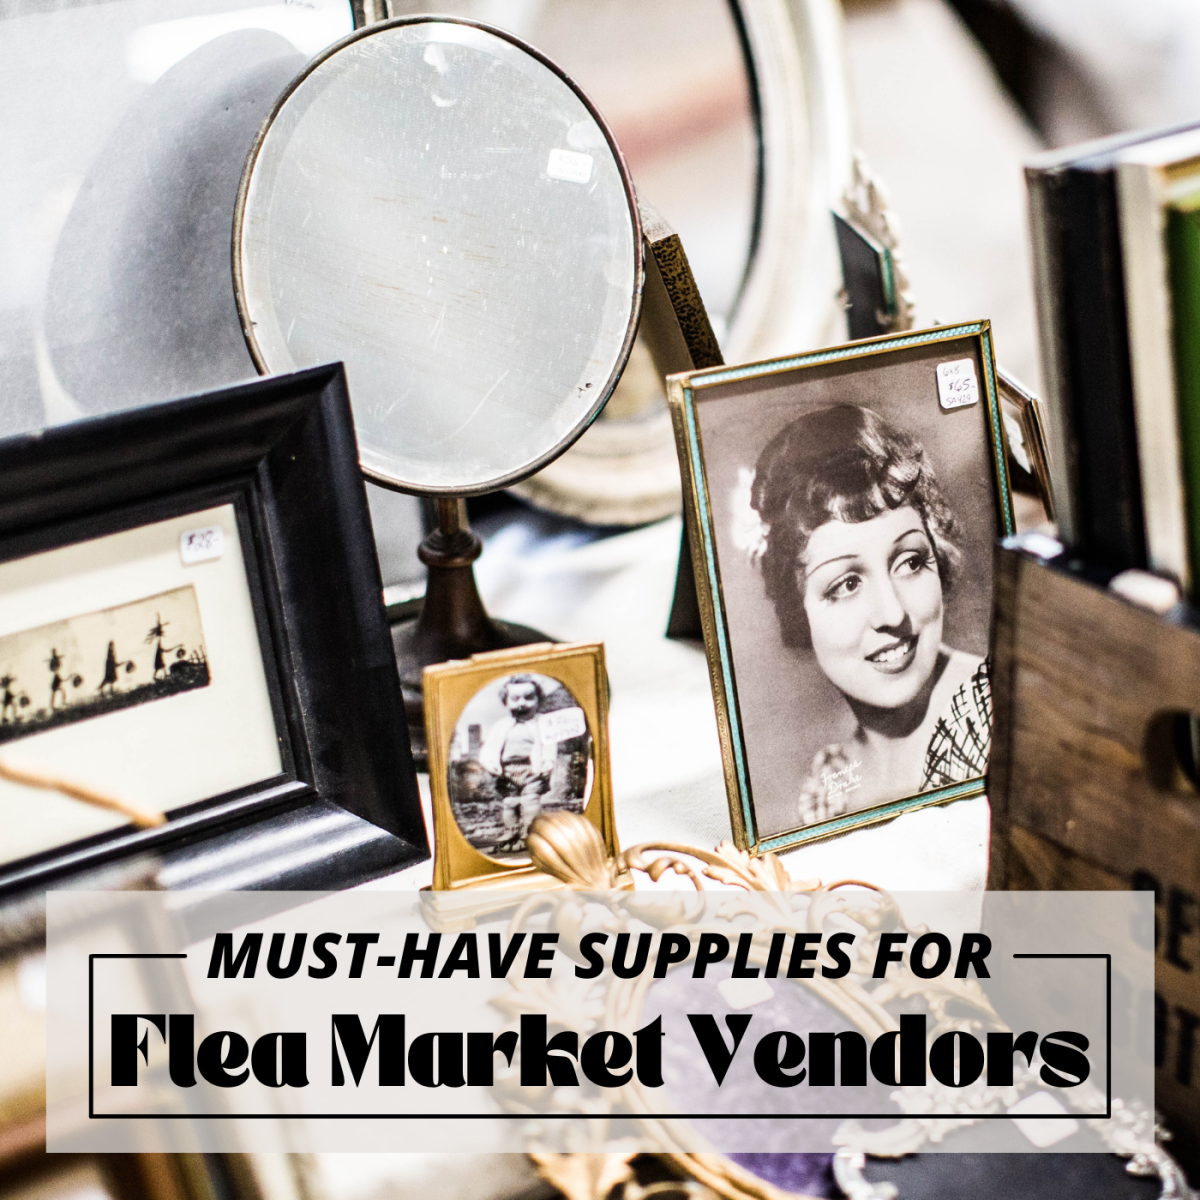 Here's what you need to arrive prepared as a vendor at a festival, farmer's market, or similar event.